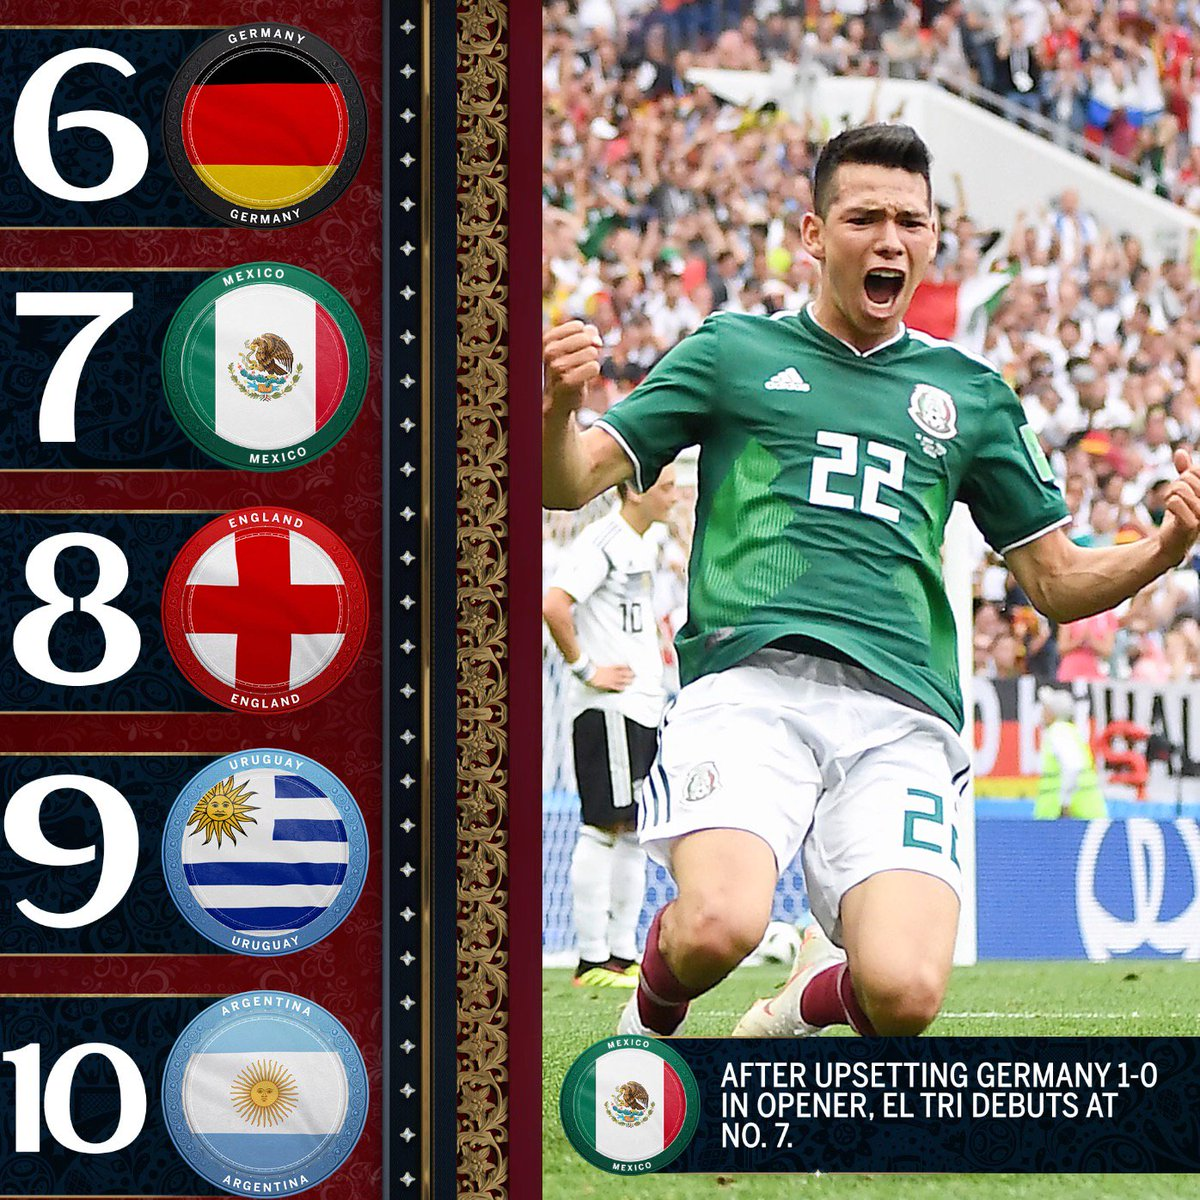 México makes its debut in our FOX Sports Power Rankings thanks to their big win over Germany. Do you agree with our list?